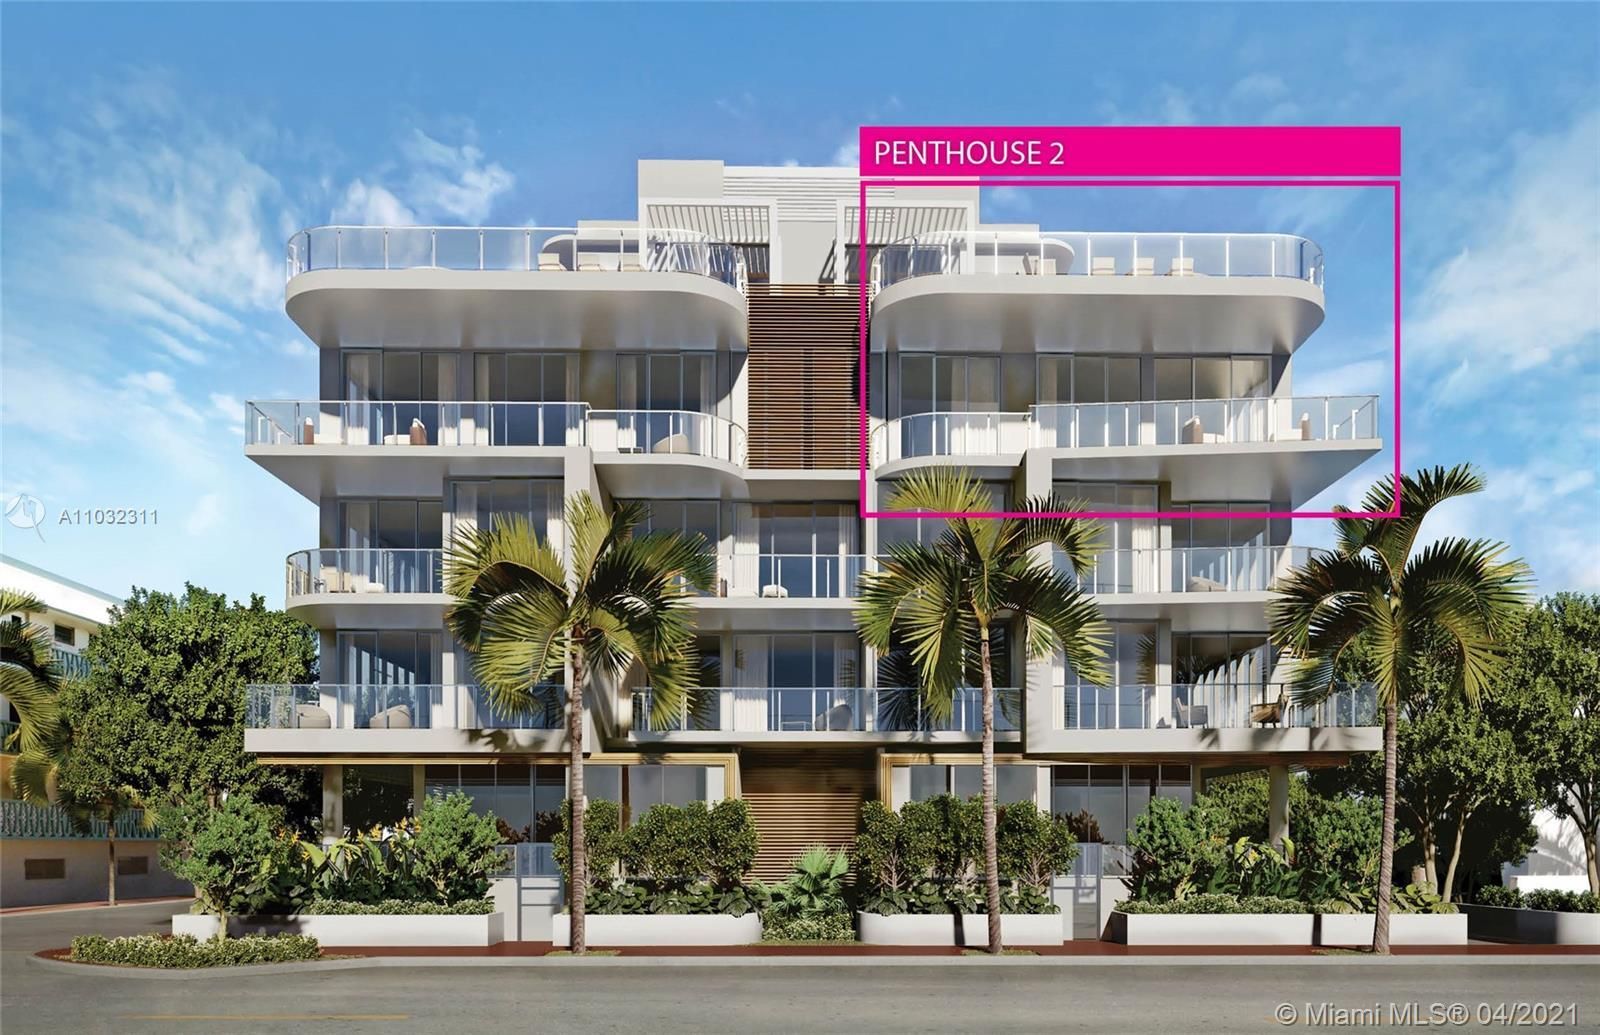 OCEAN PARK SOUTH BEACH offers a limited collection of ten, two-to four bedroom luxury beach residenc